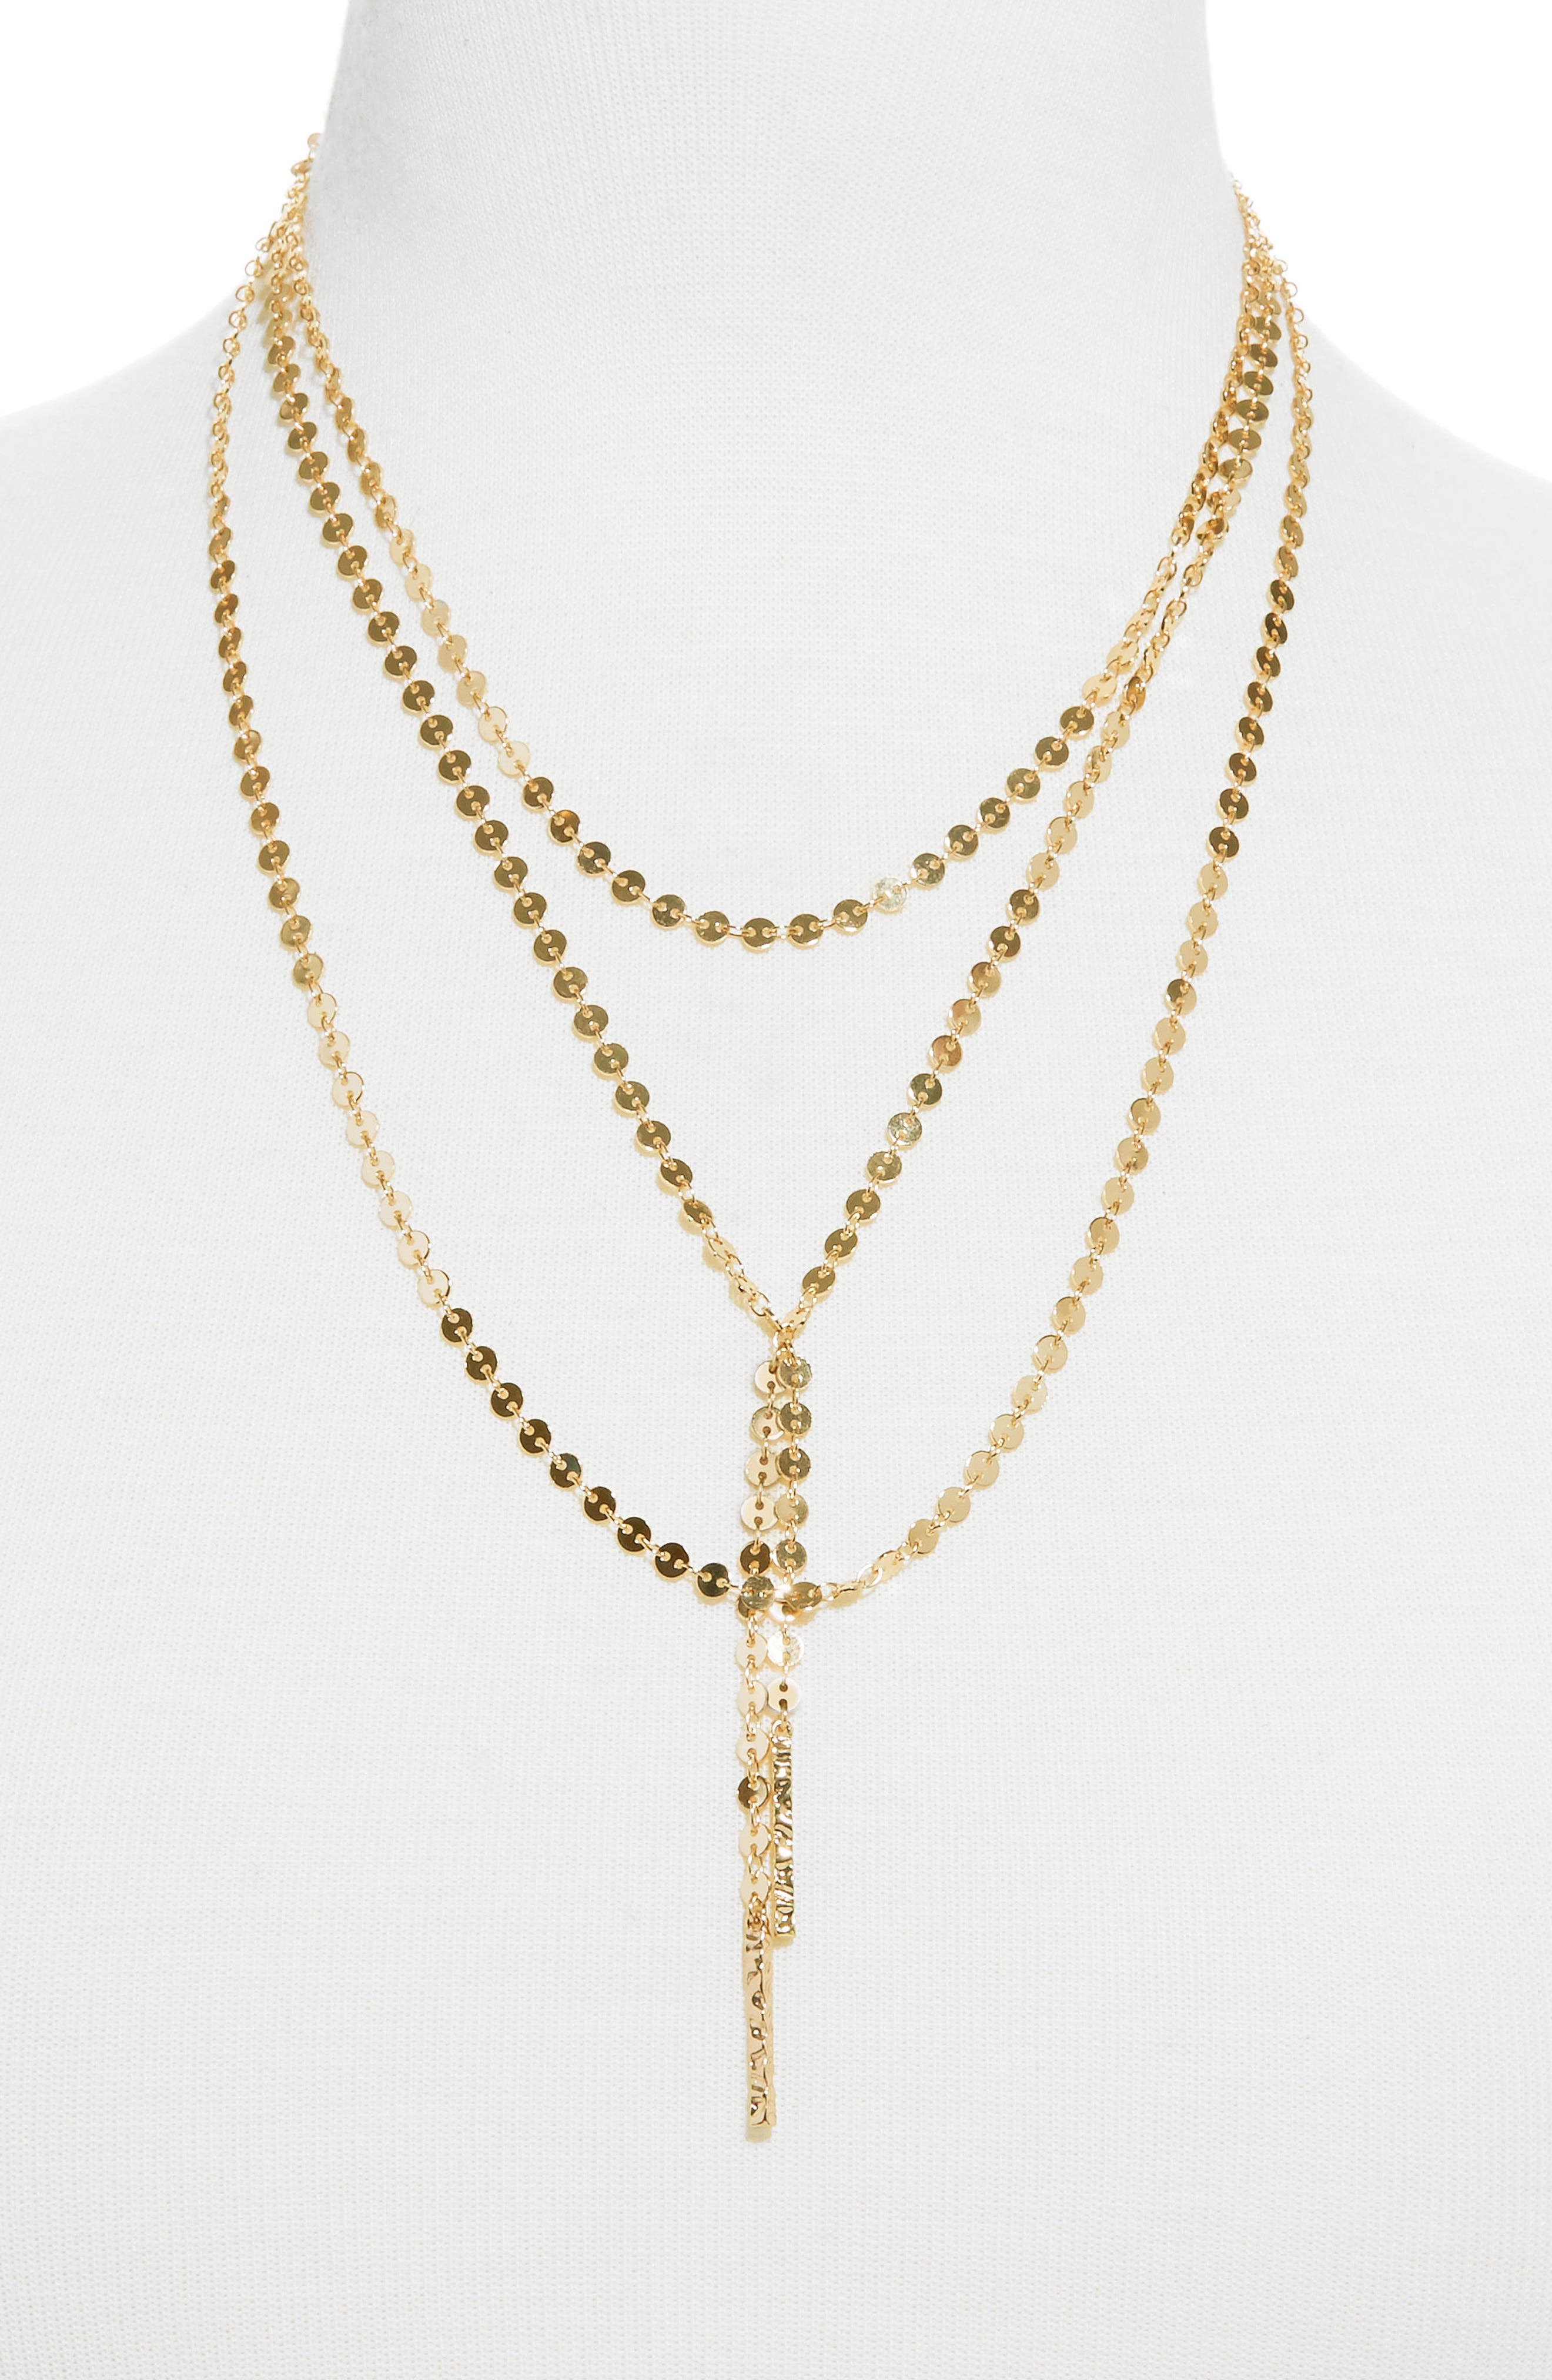 BAUBLEBAR, Amber Layered Chain Y-Necklace, Main thumbnail 1, color, GOLD